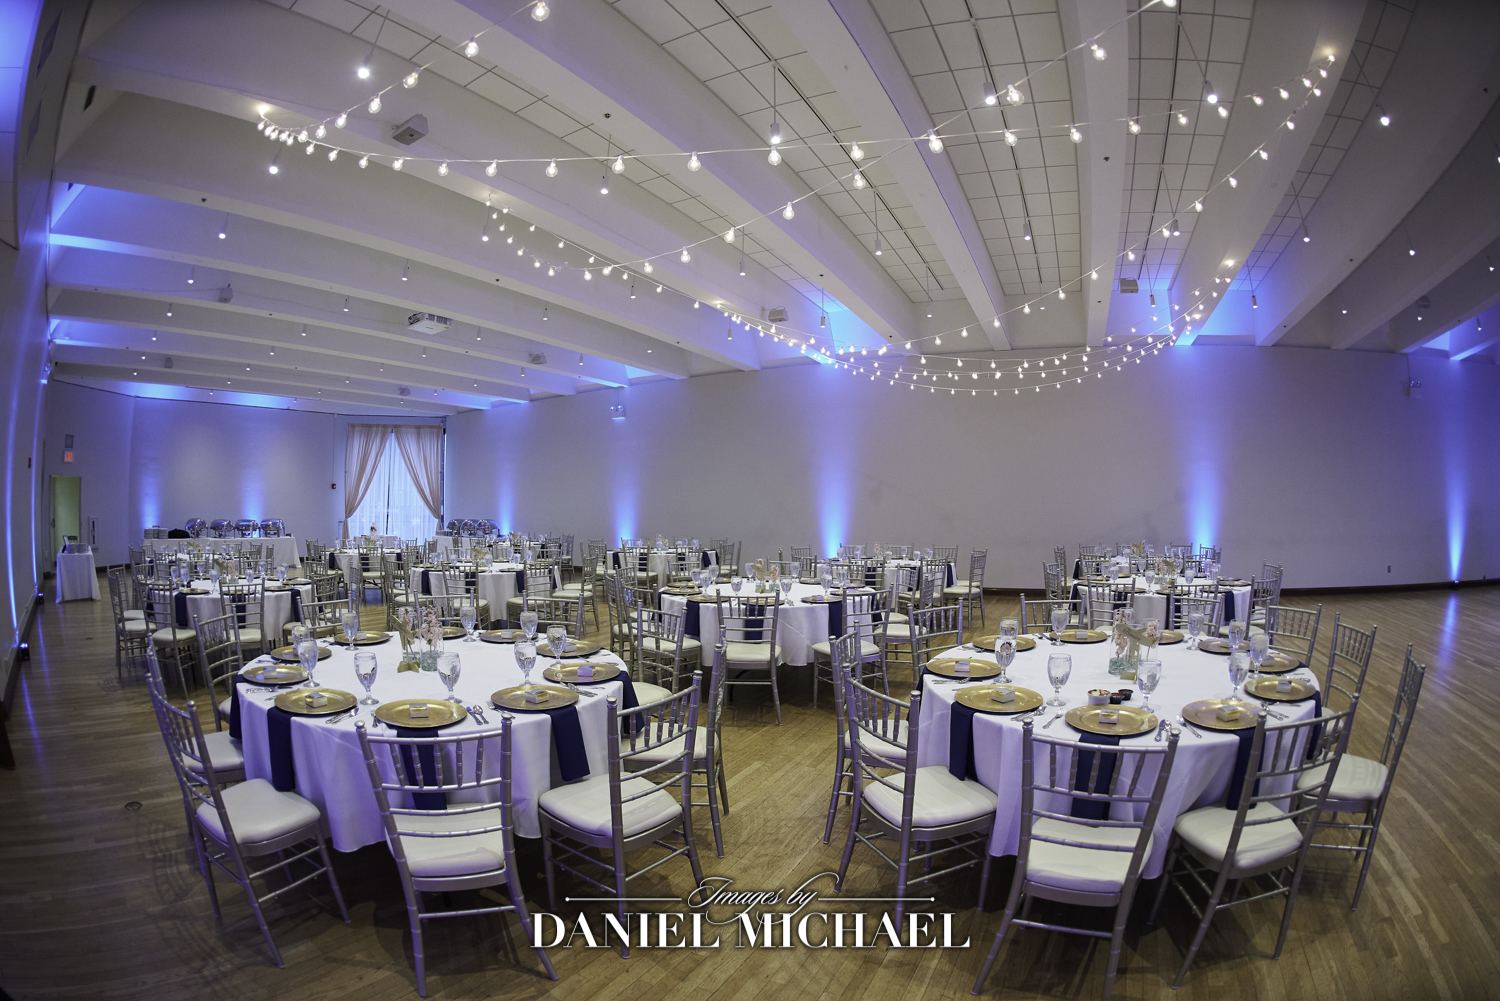 The Center Wedding Reception Venue